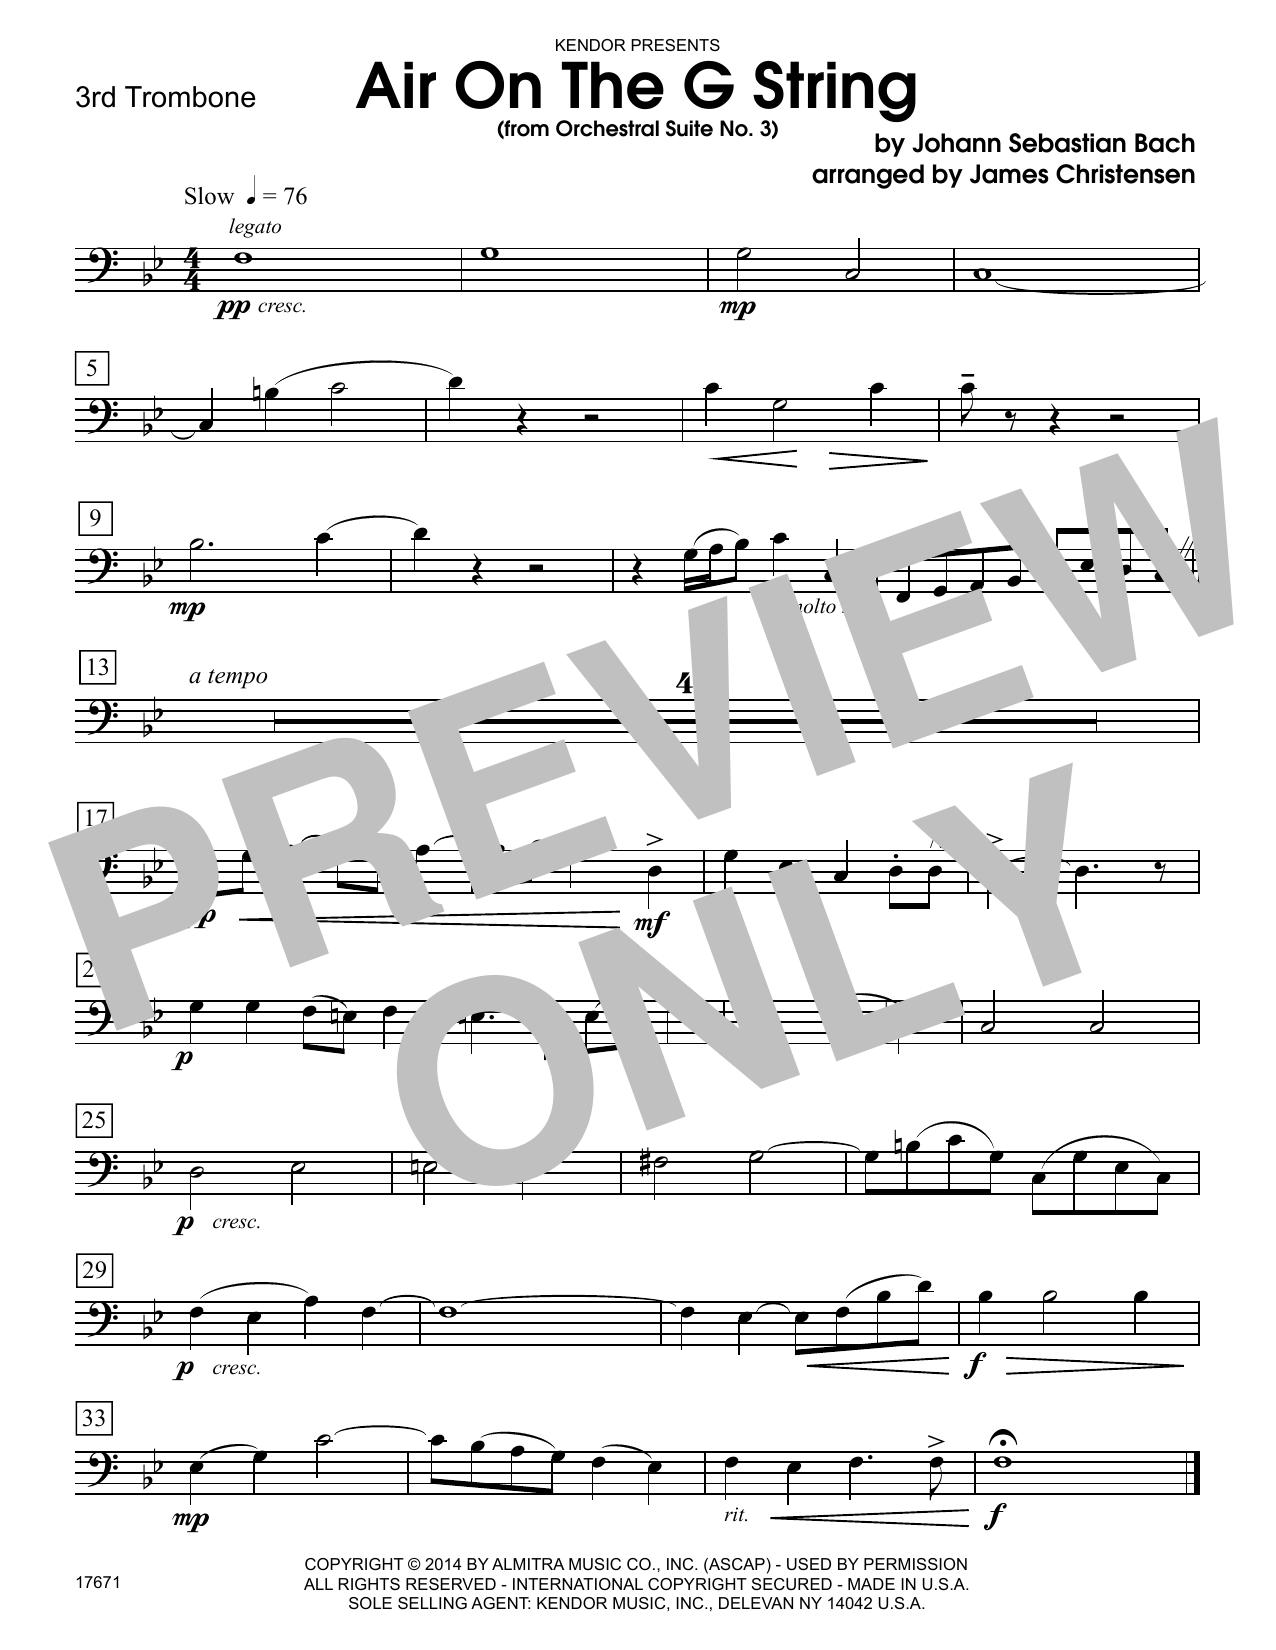 Air On The G String (from Orchestral Suite No. 3) - 3rd Trombone Sheet Music